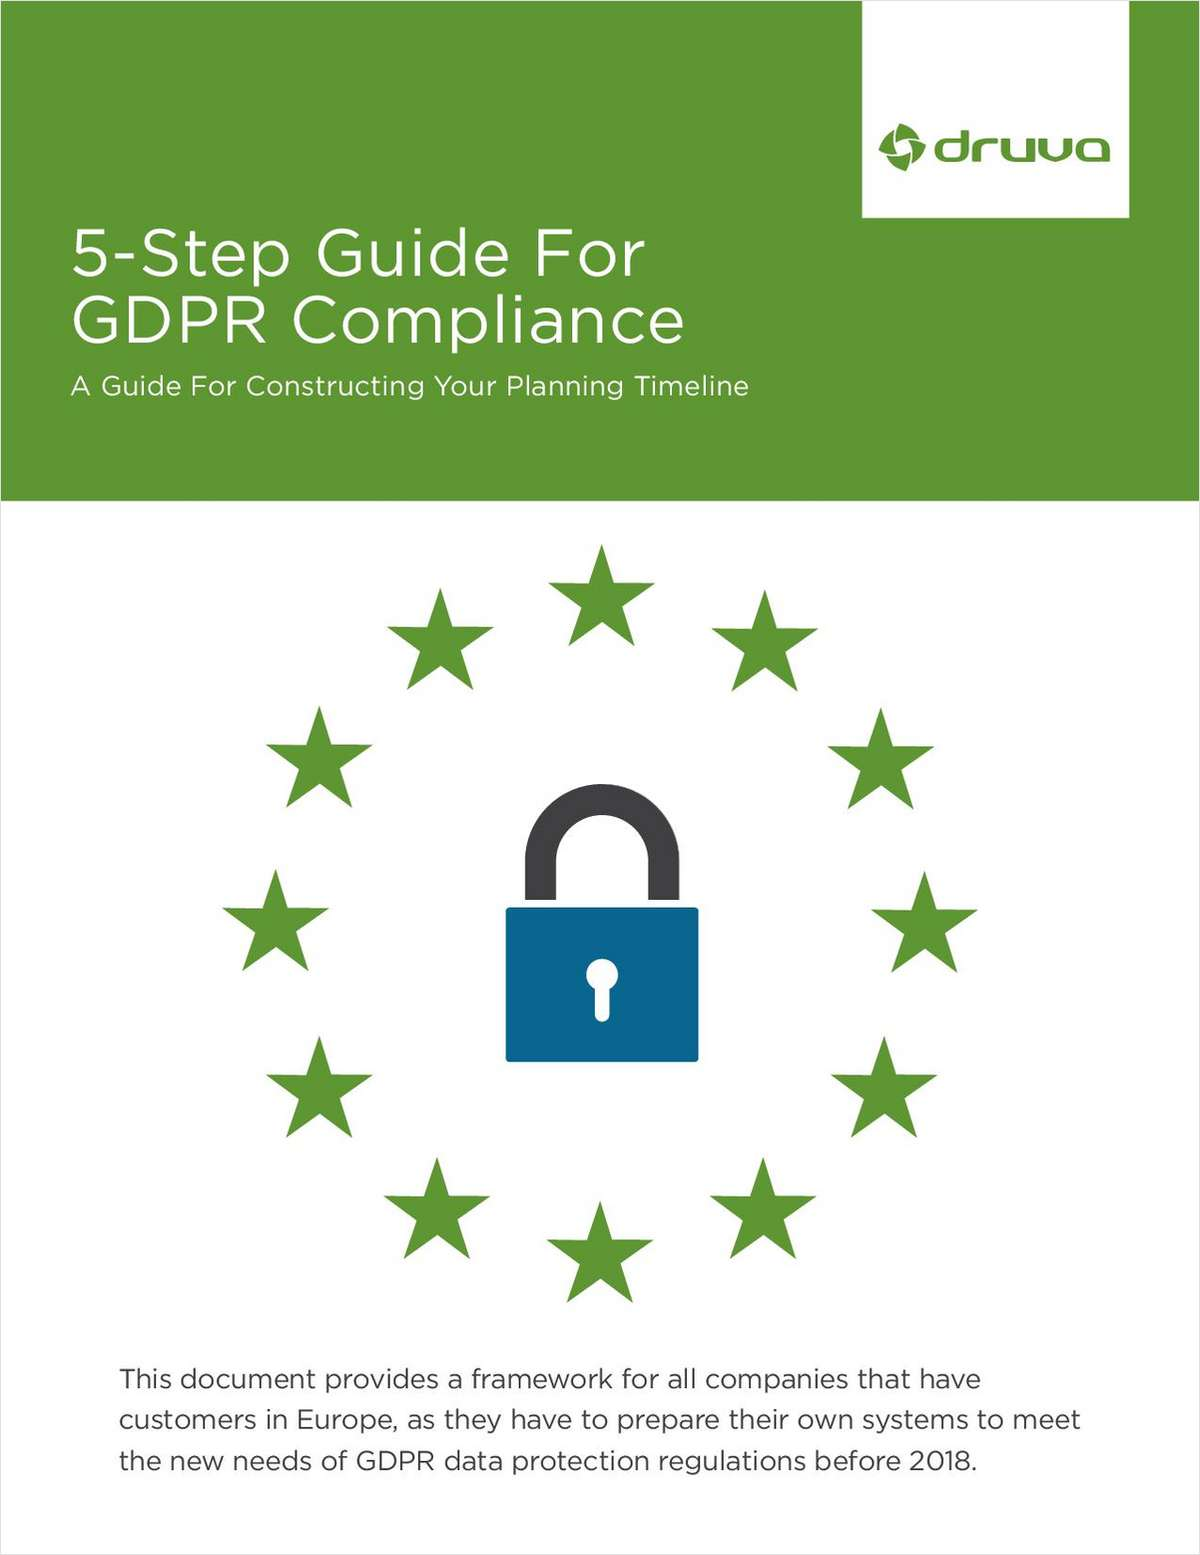 5-Step Guide For GDPR Compliance: A Guide For Constructing Your Planning Timeline